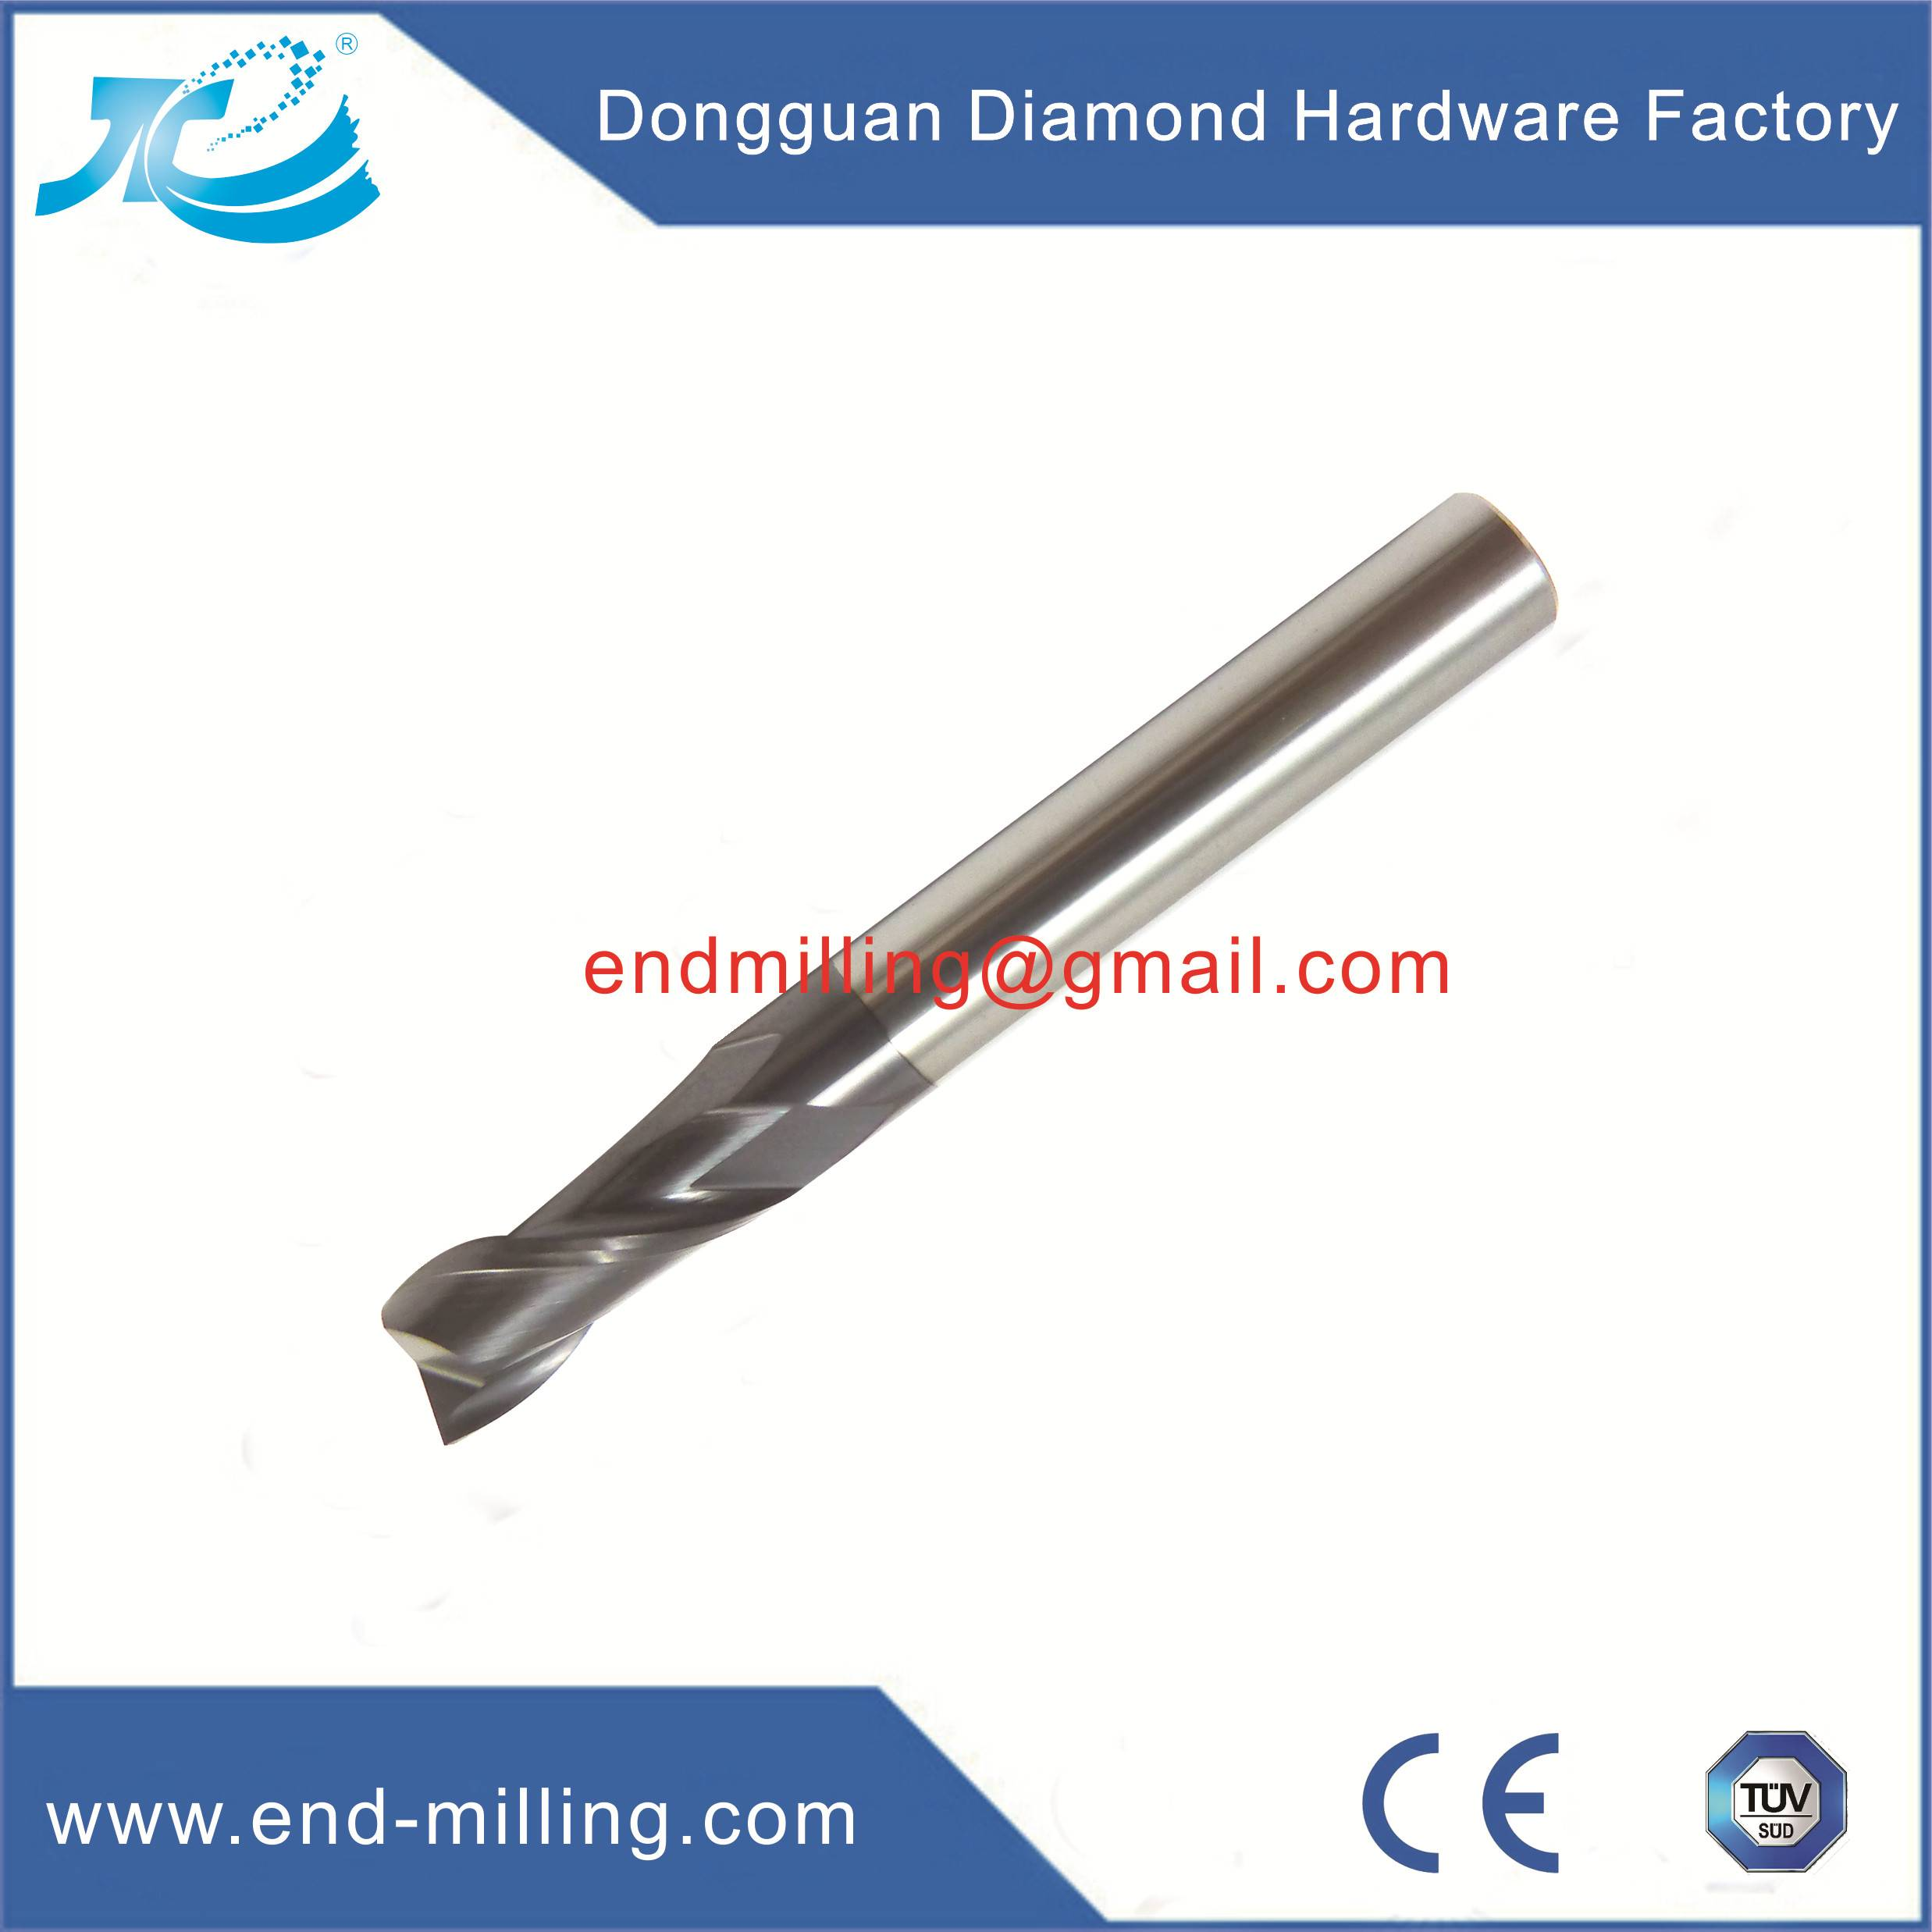 Tungsten Steel Square End Mill With 2/4/6 Flute